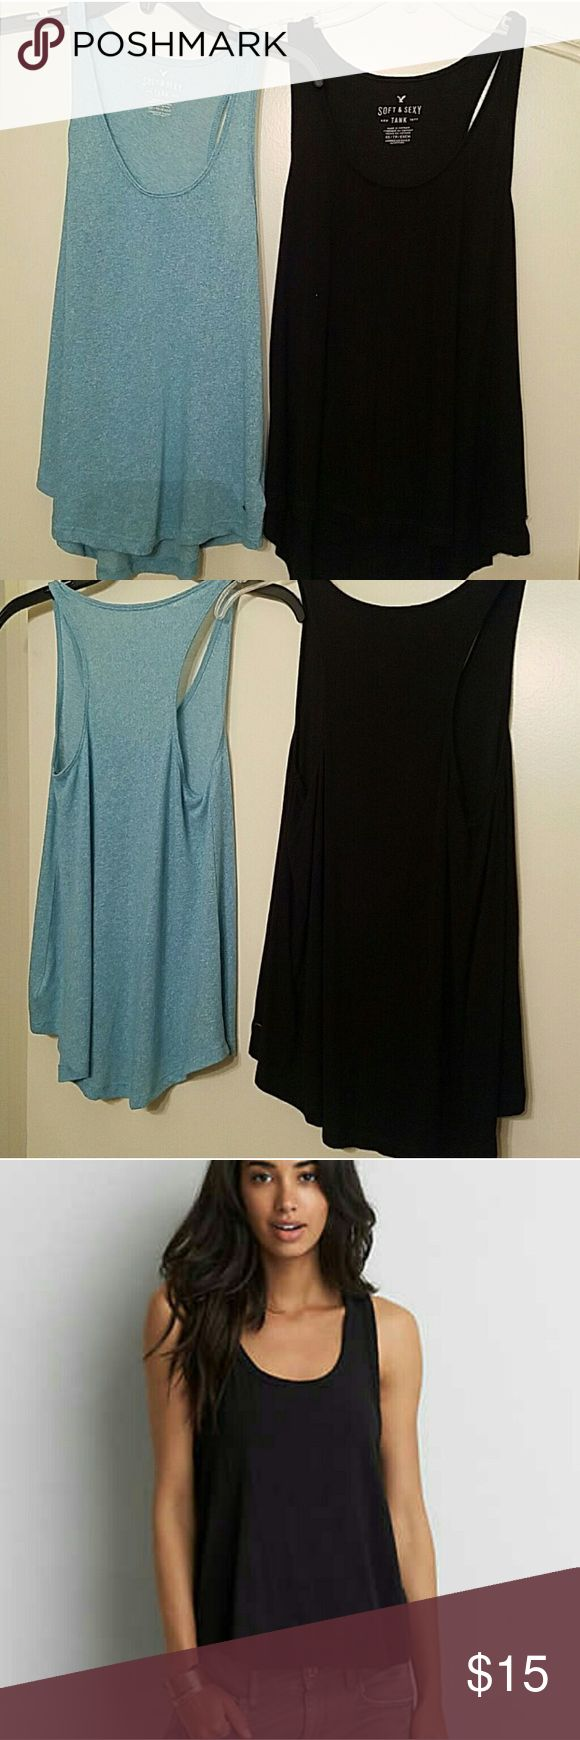 Two American Eagle Loose Tank Tops Two American Eagle tanks. One is sky blue and the other is black! Very cute just not my size :( American Eagle Outfitters Tops Tank Tops